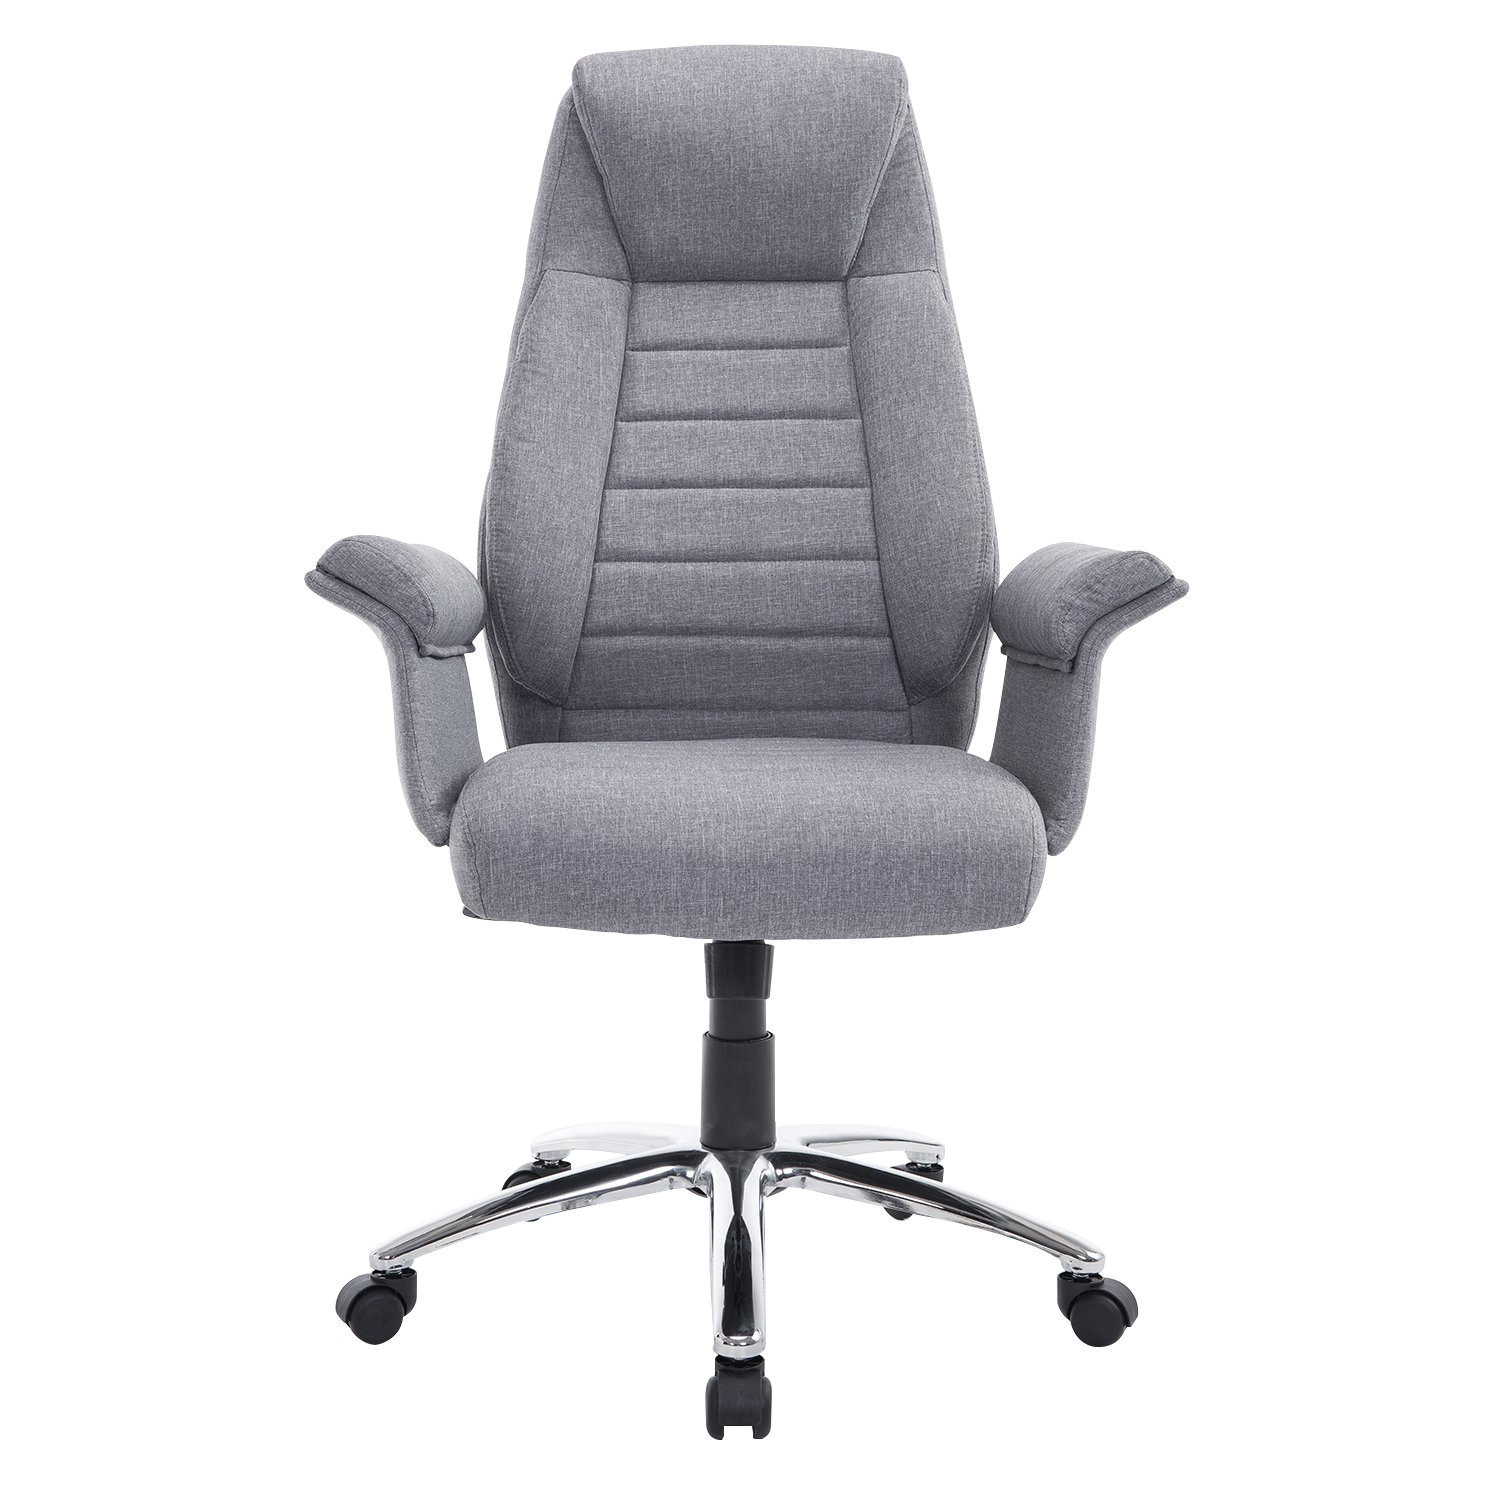 amazon com homcom high back fabric executive leisure home office chair with arms light grey kitchen dining